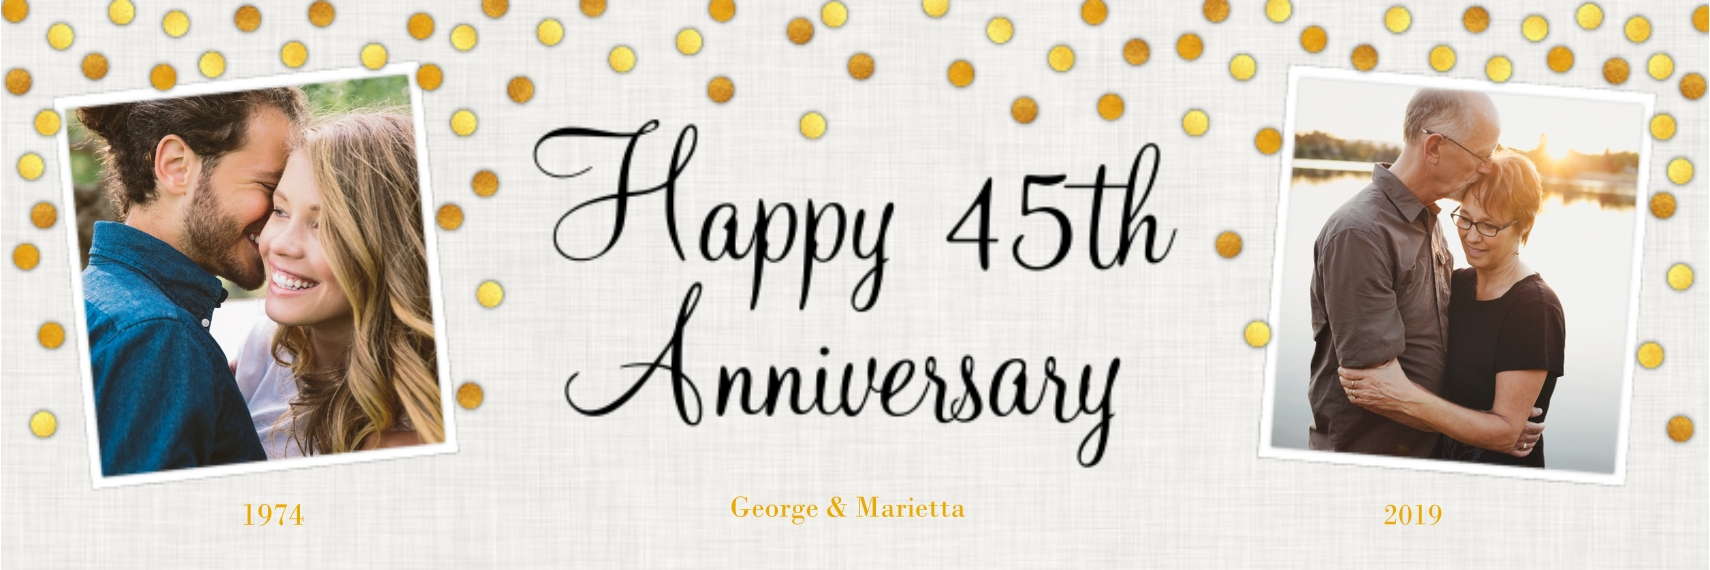 Anniversary 1x3 Adhesive Banner, Home Décor -Gold Anniversary